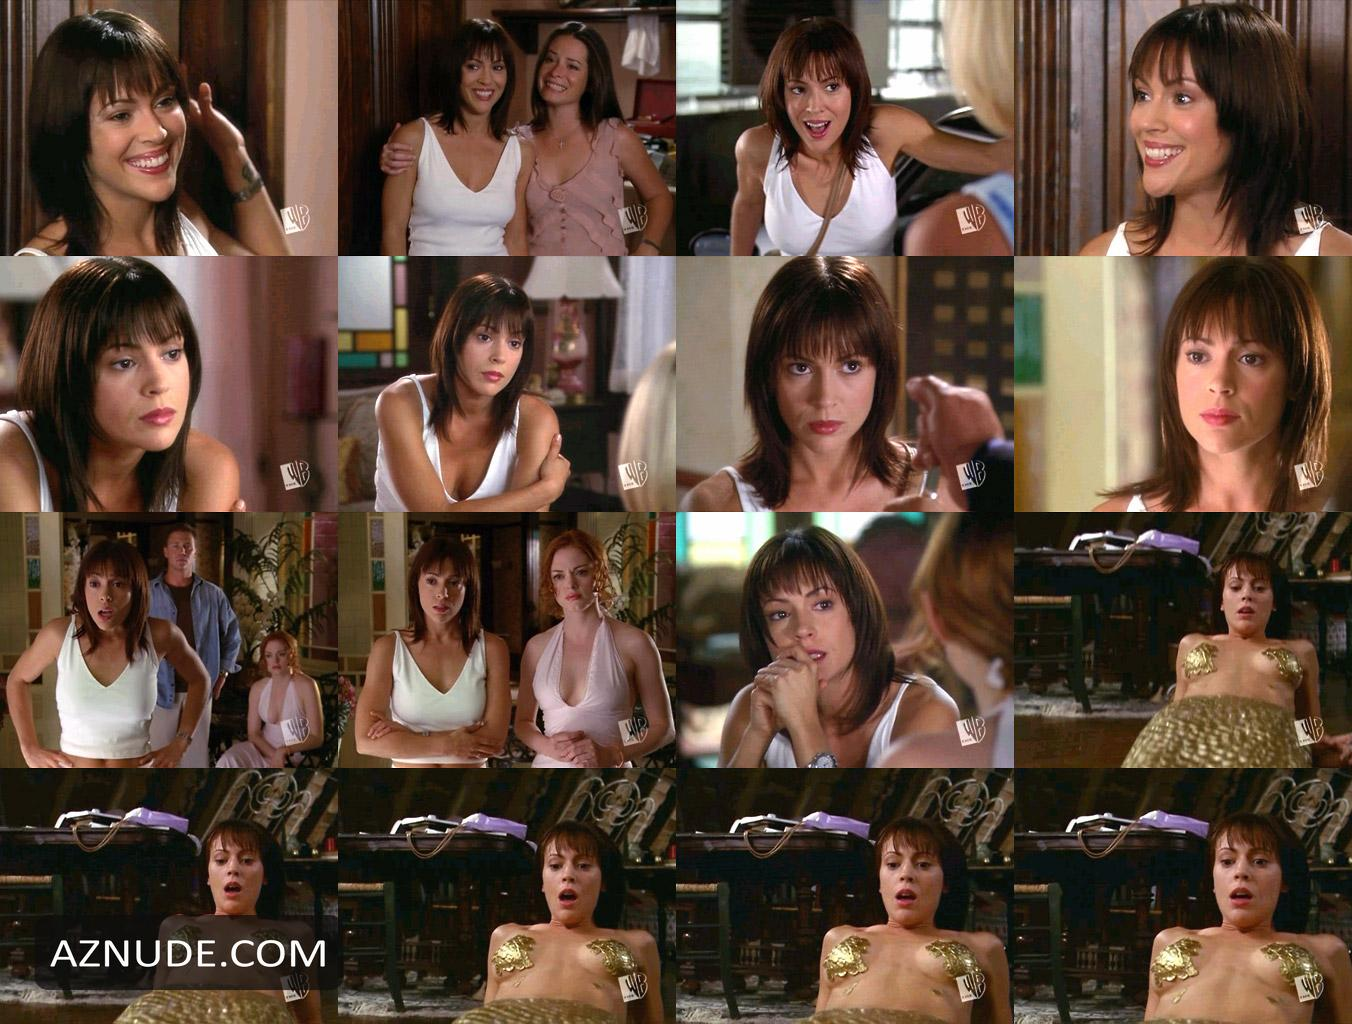 Chick from charmed naked — photo 10